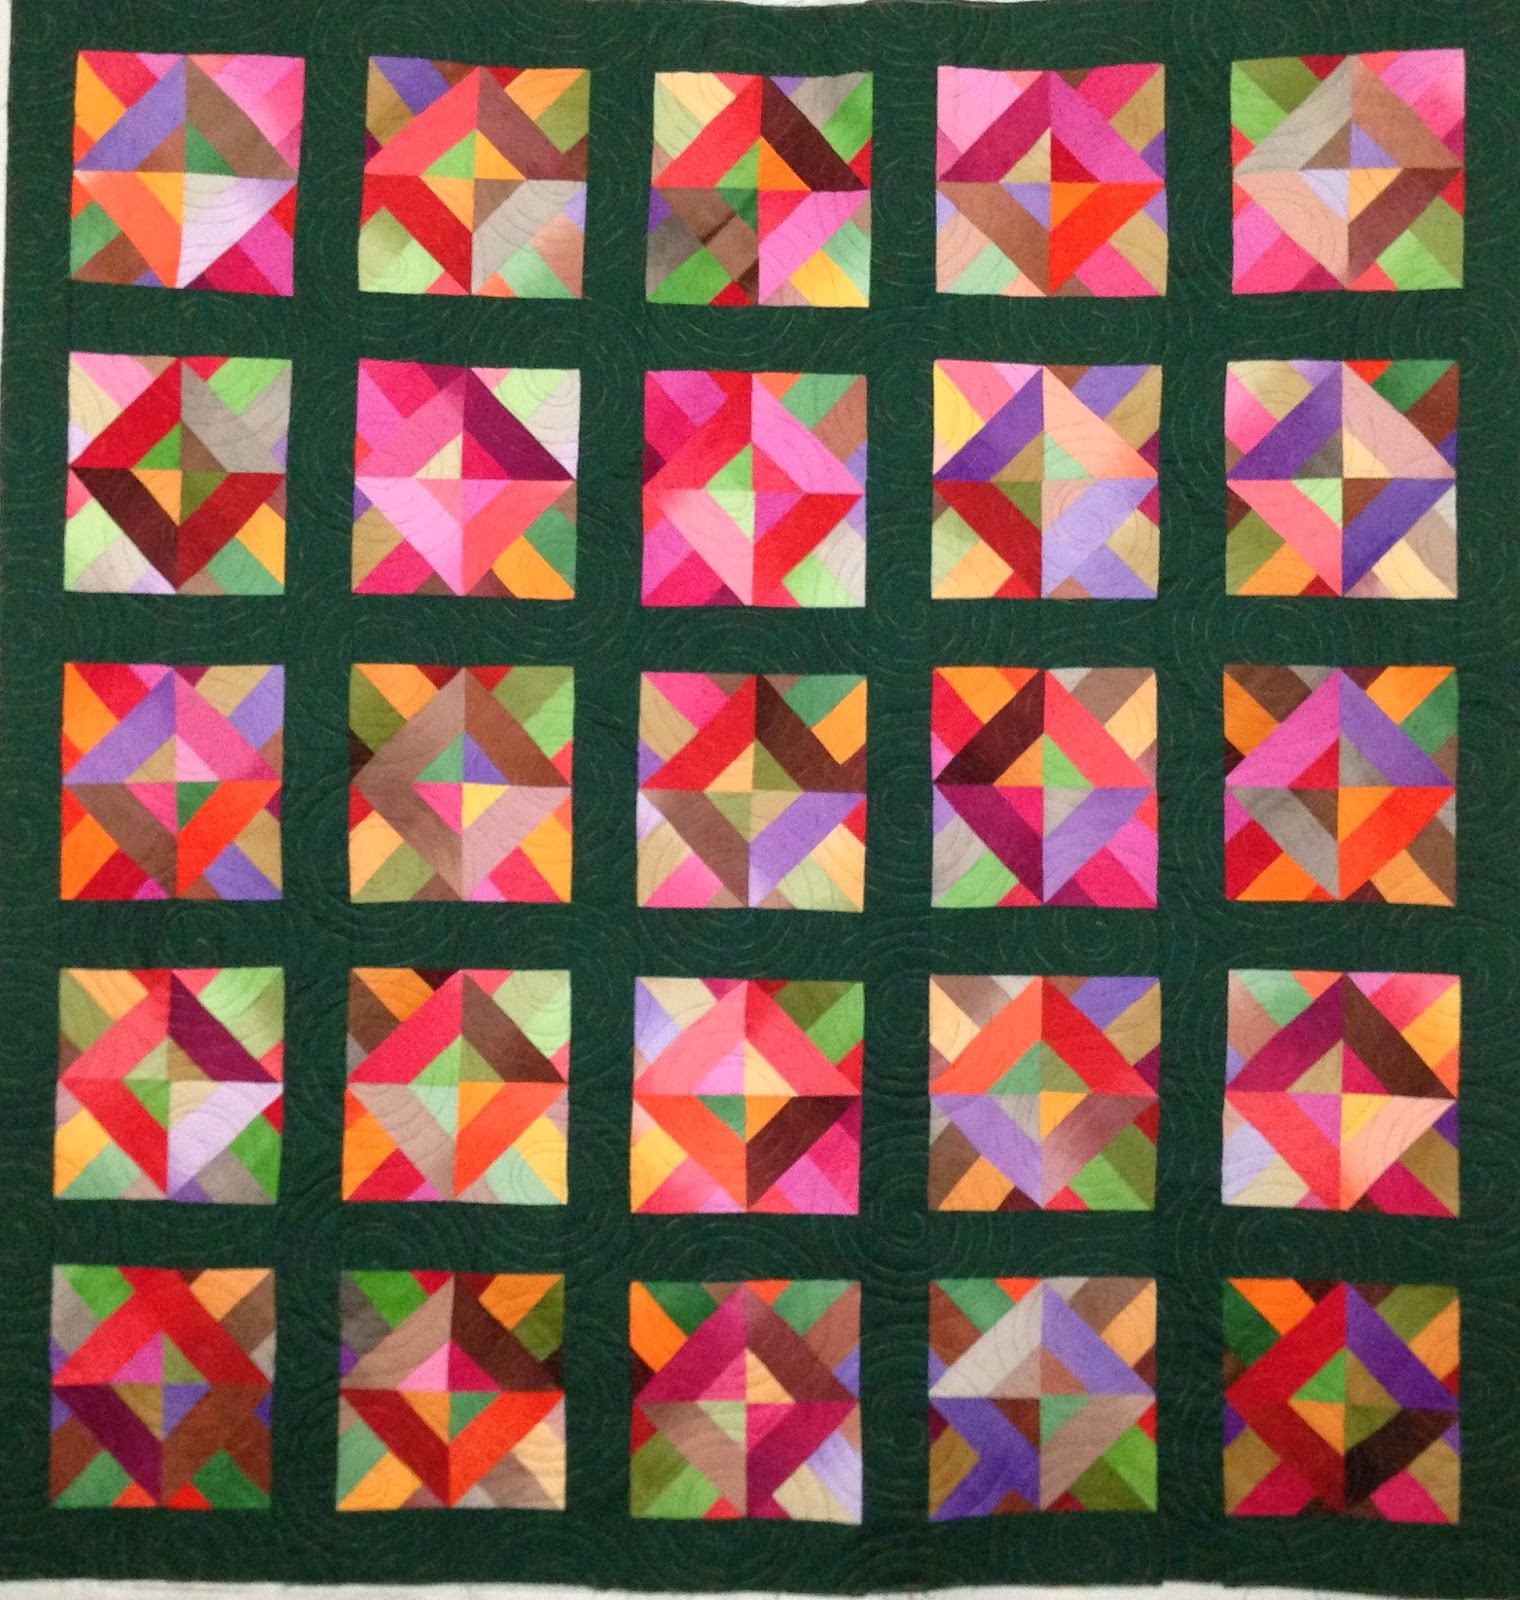 Laura Joy's Geometric Quilt